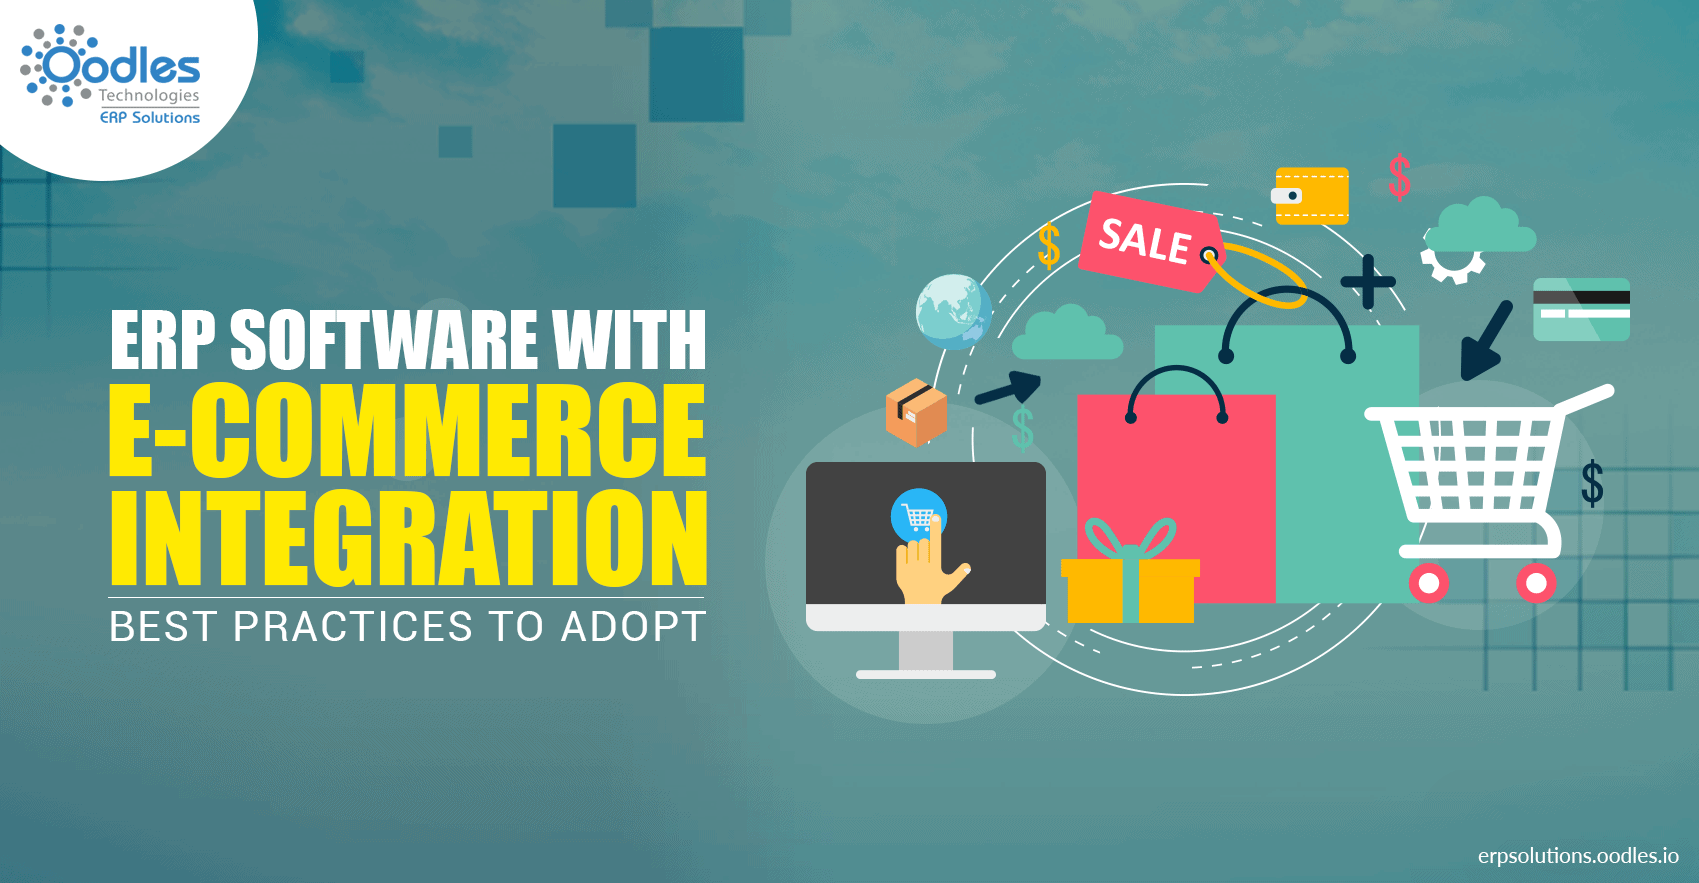 E-commerce and ERP software integration